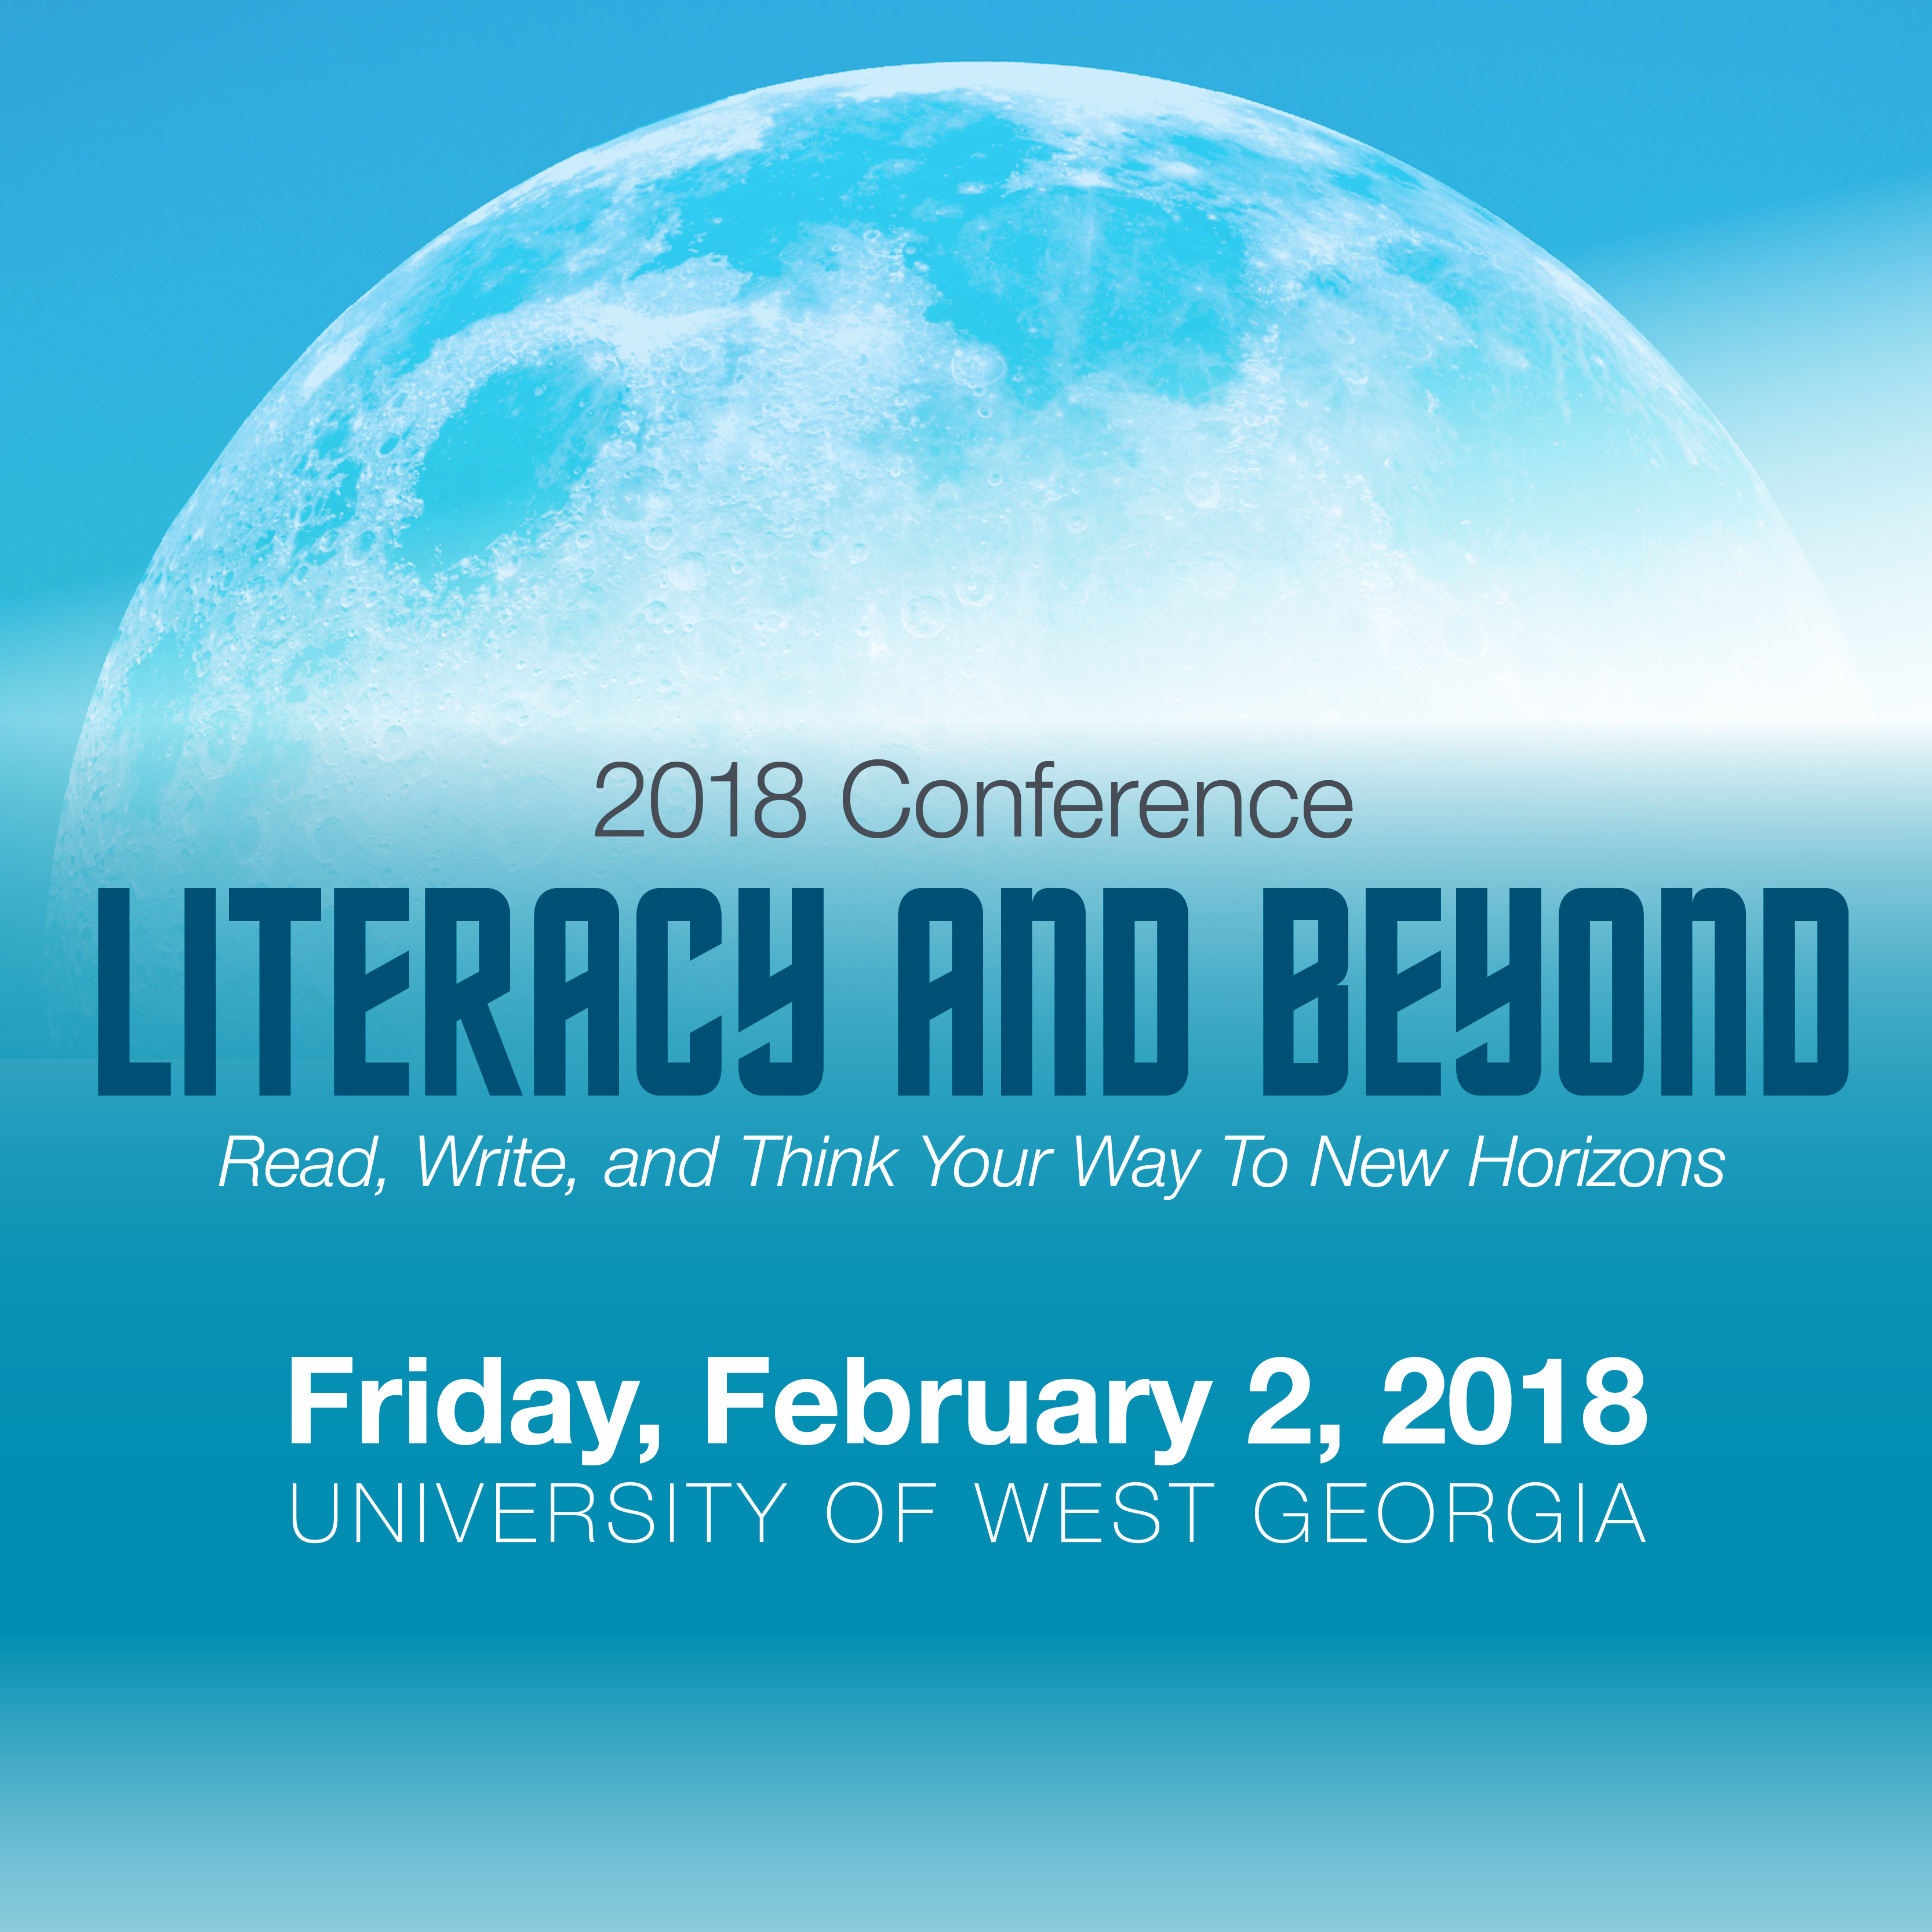 2018 Conference: Literacy and Beyond: Read, Write, and Think Your Way to New Horizons:                            Friday, February 2, 2018: Univeristy of West Georgia